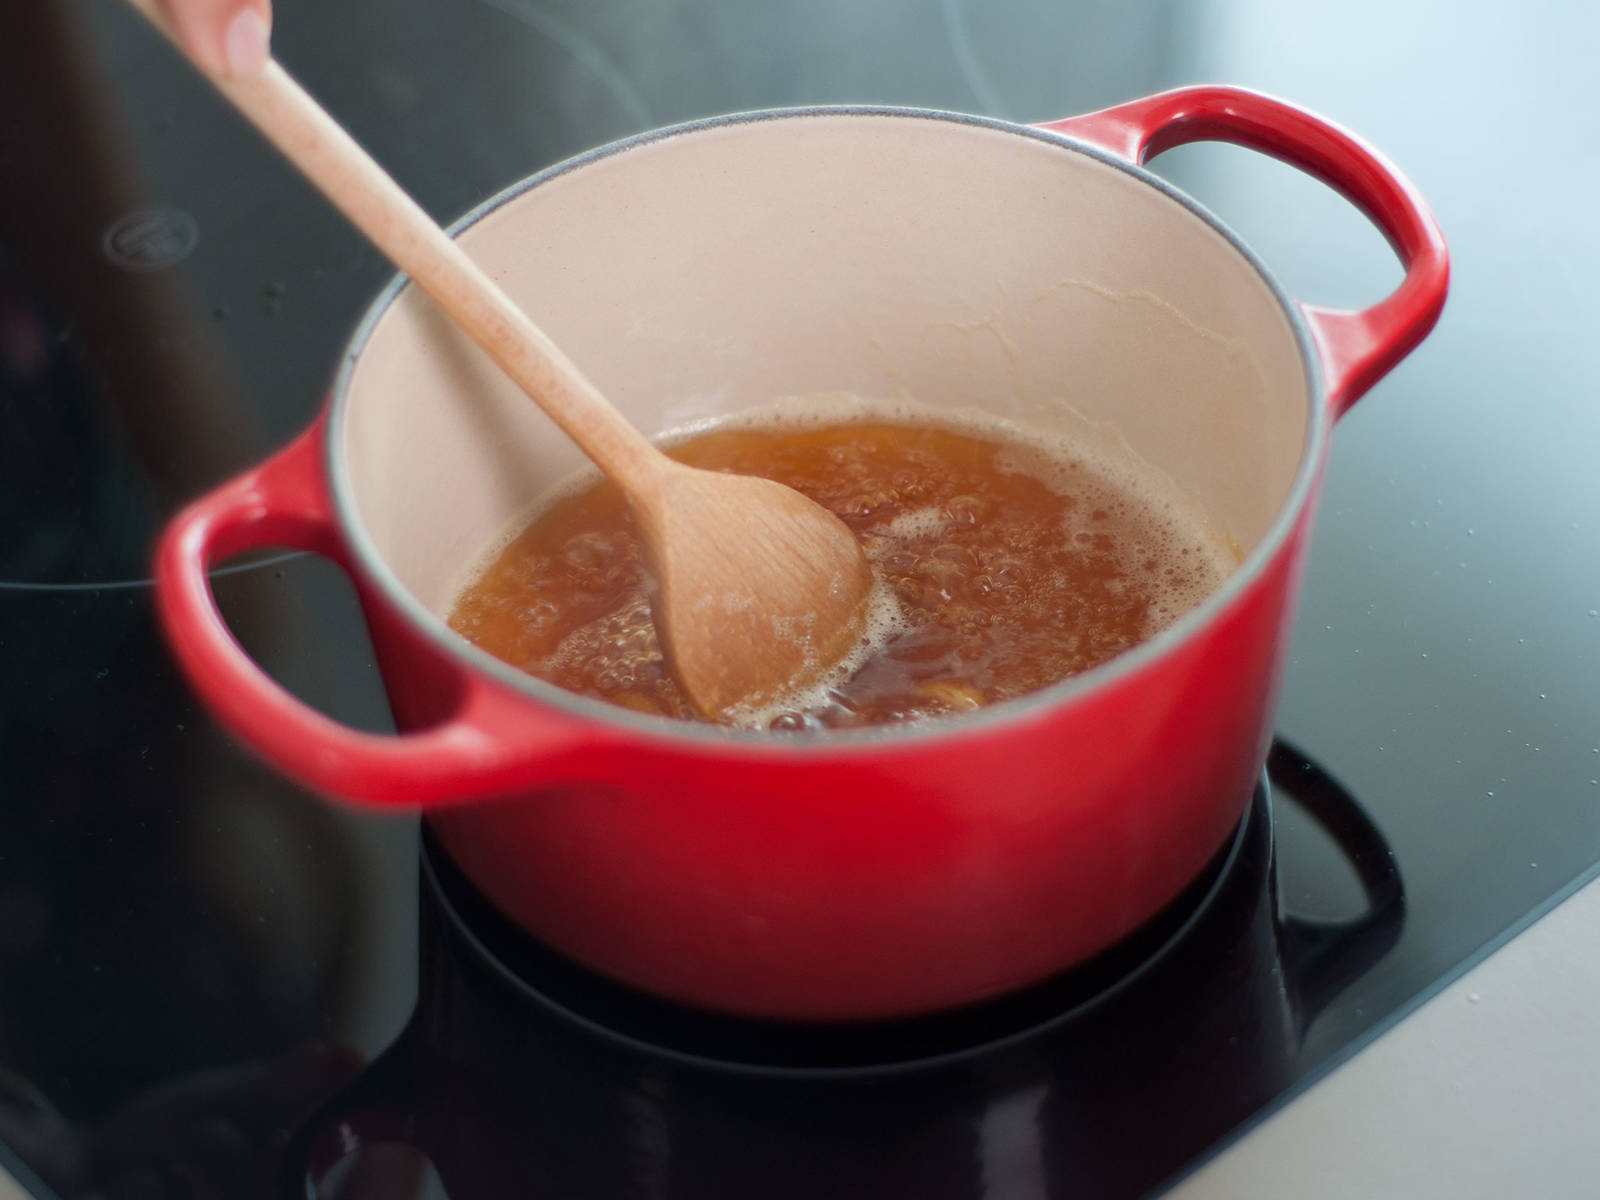 In a small saucepan, caramelize sugar over medium-low heat until slightly thickened and amber in color. Deglaze with lemon juice.